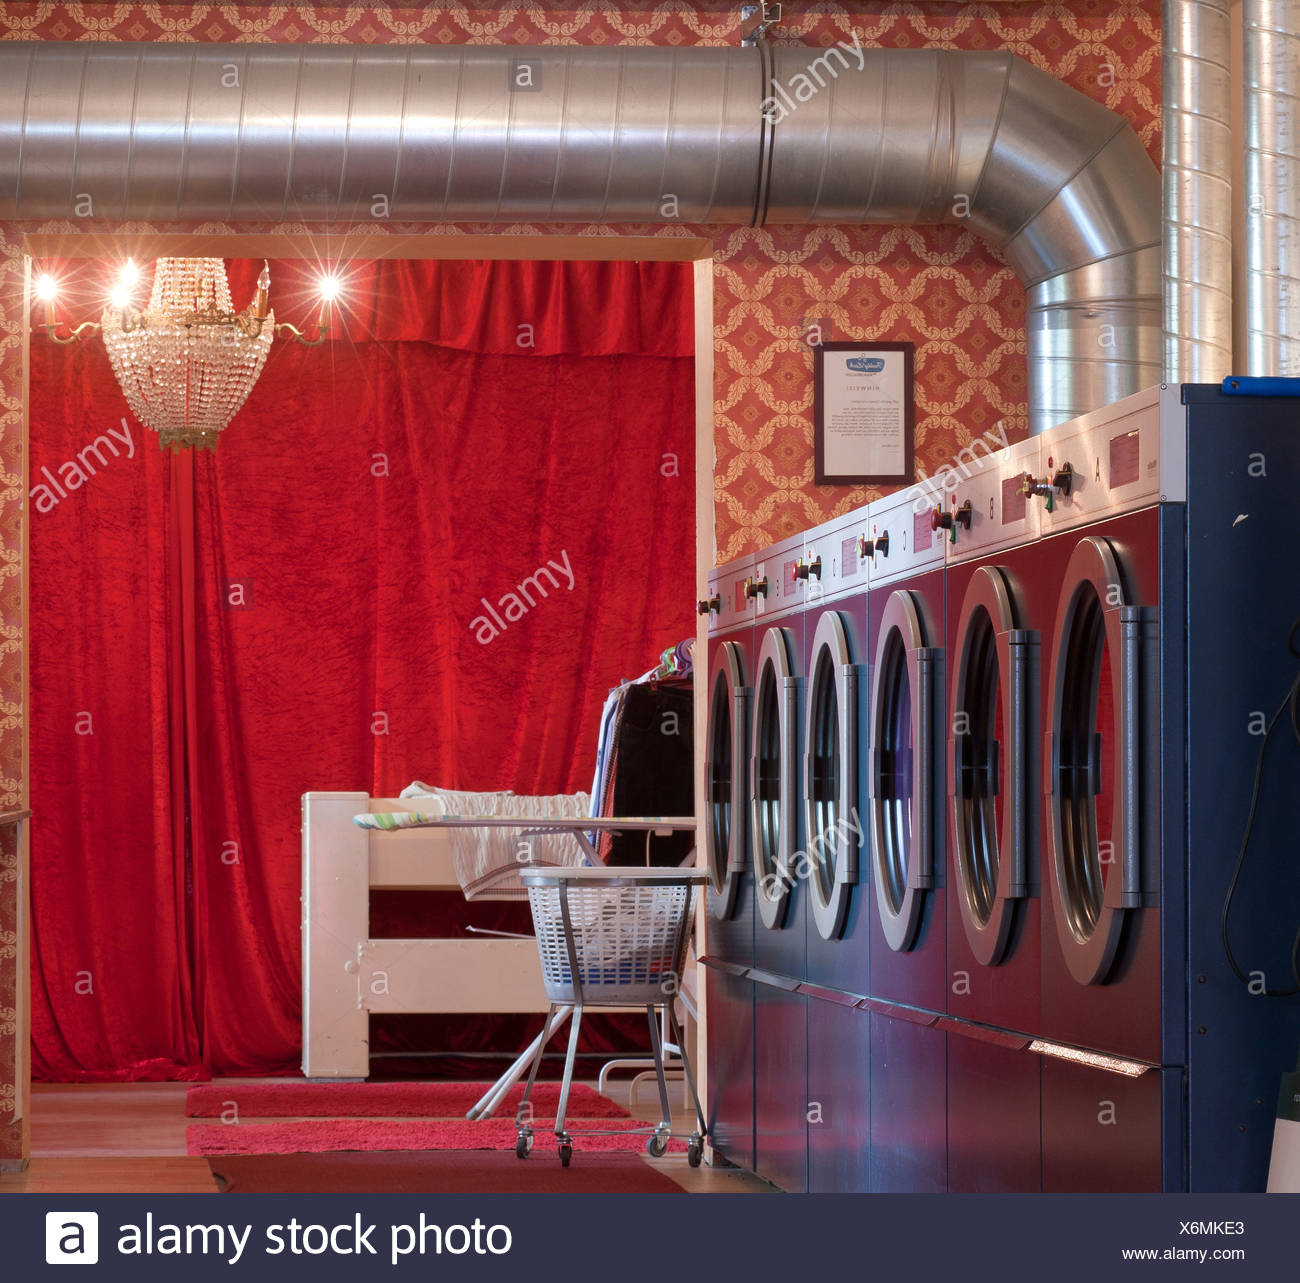 Berlin, Germany, Interior view of Freddy leak be launderette Gotzkowskystrasse in Berlin-Moabit - Stock Image